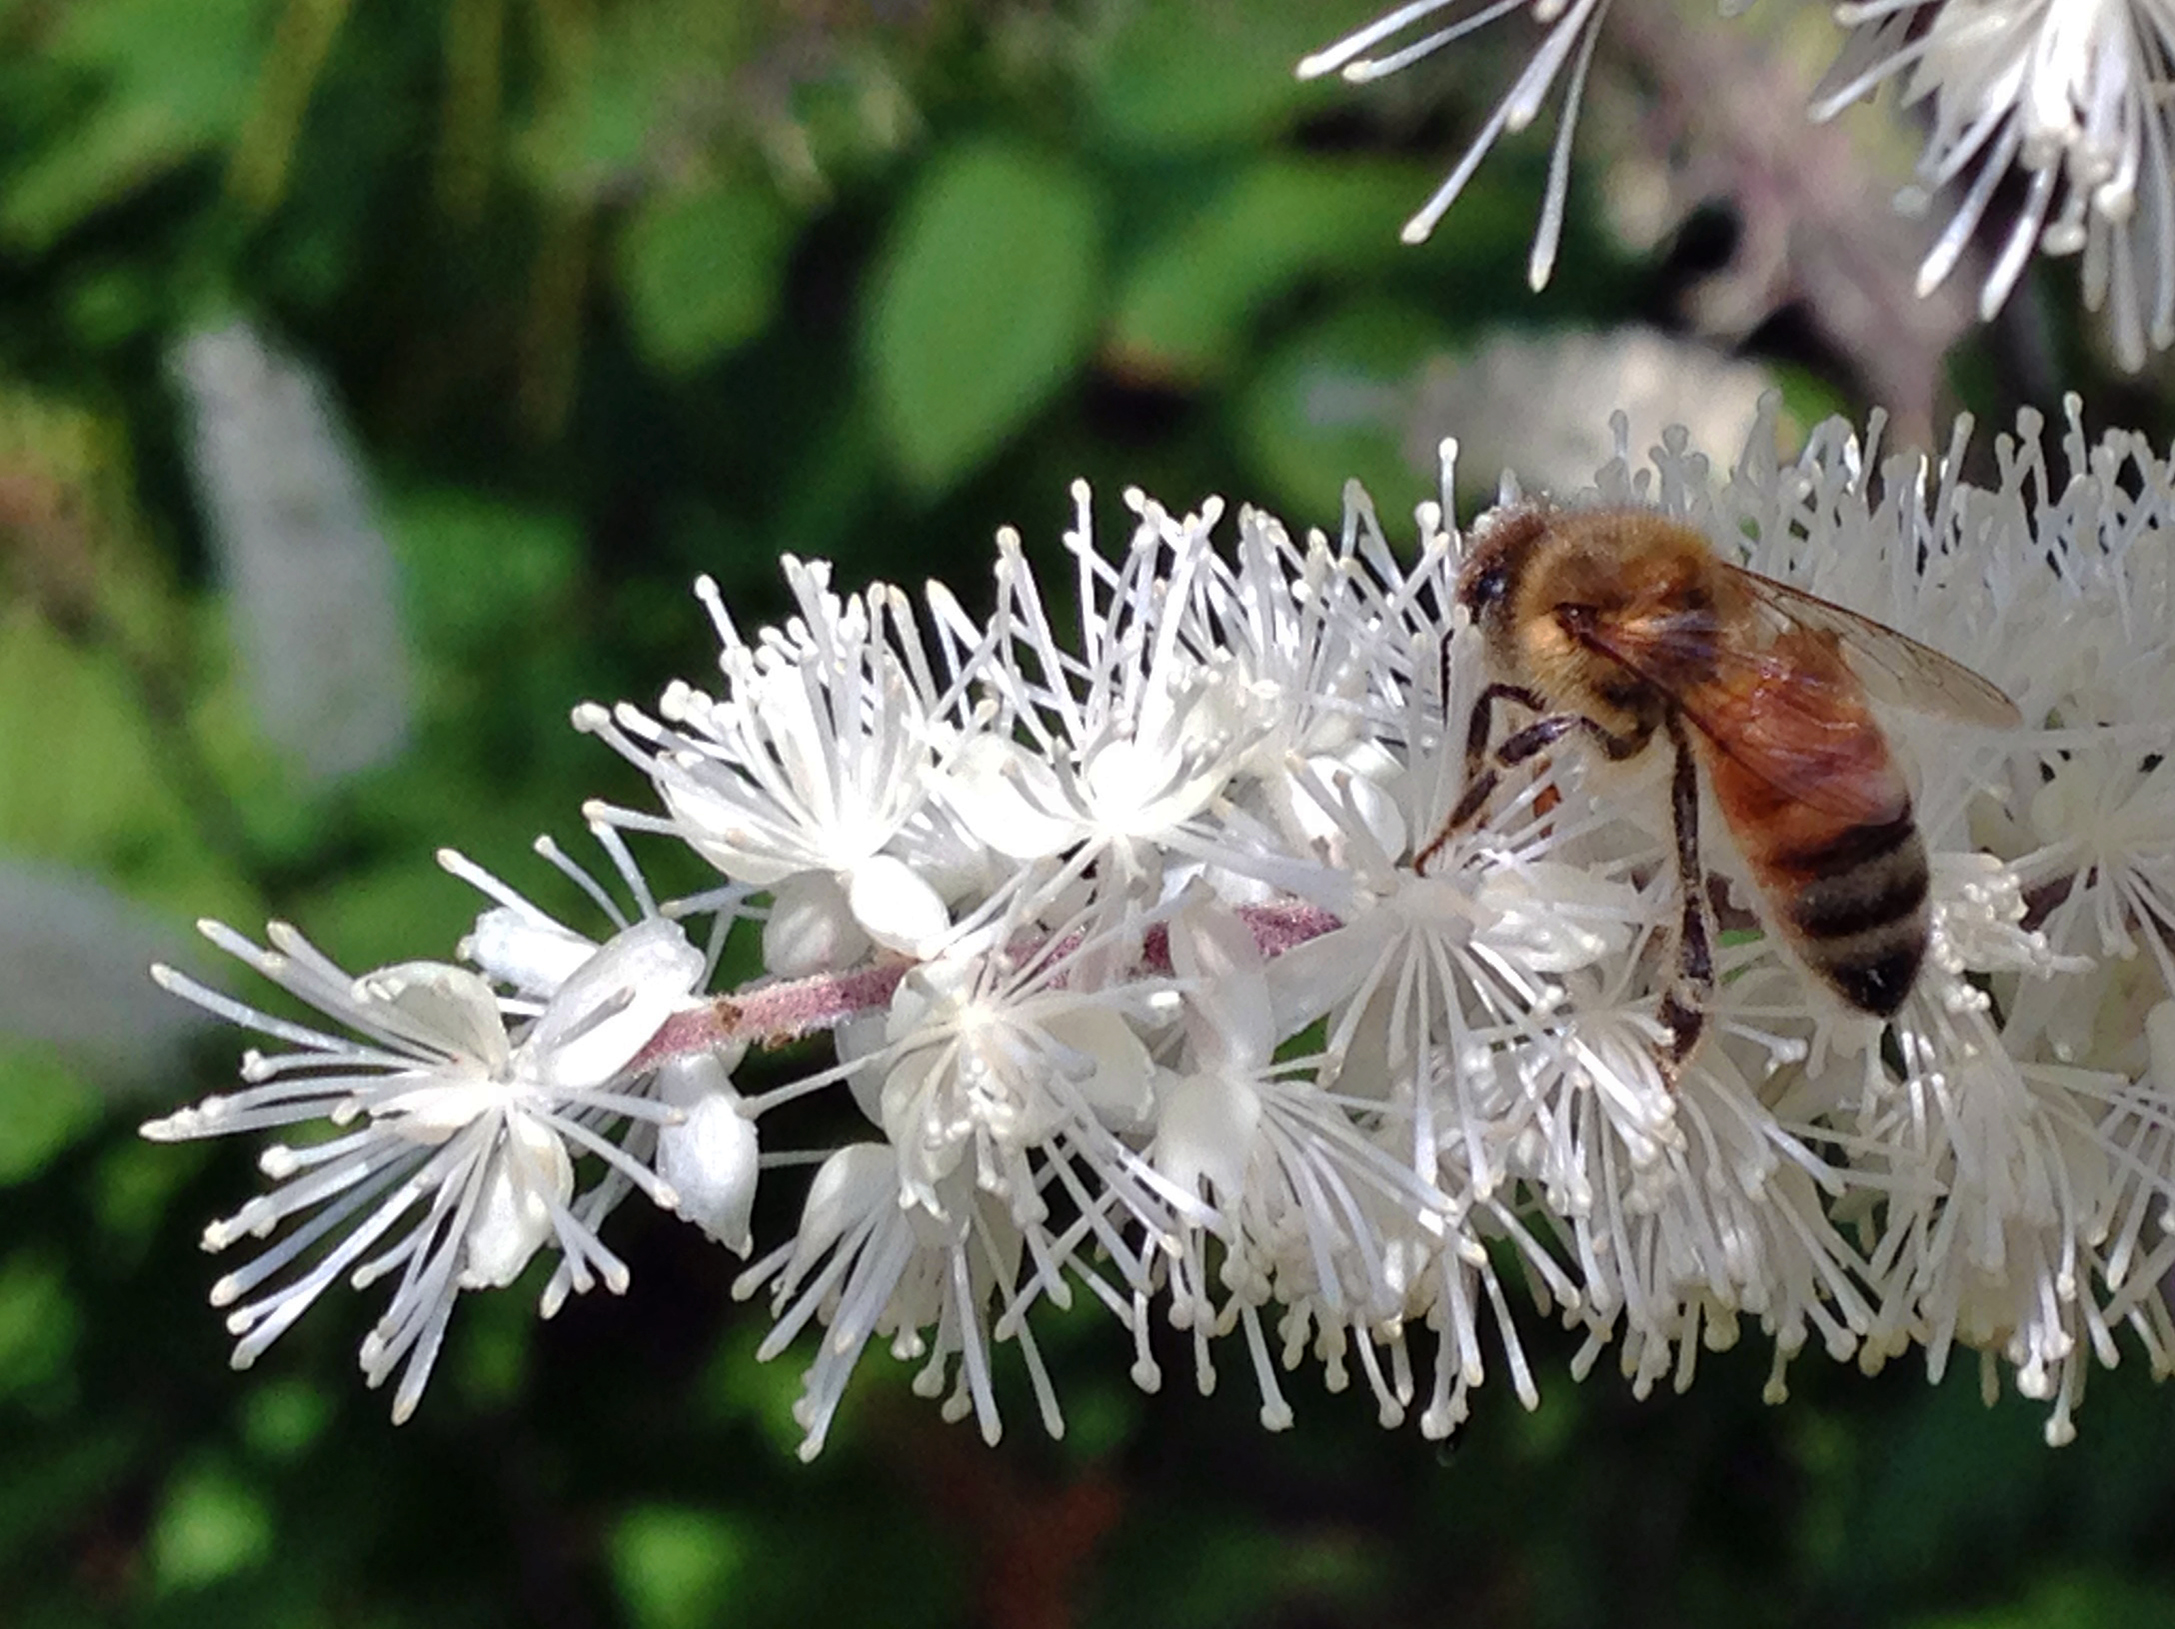 How to protect and increase pollinators in your landscape